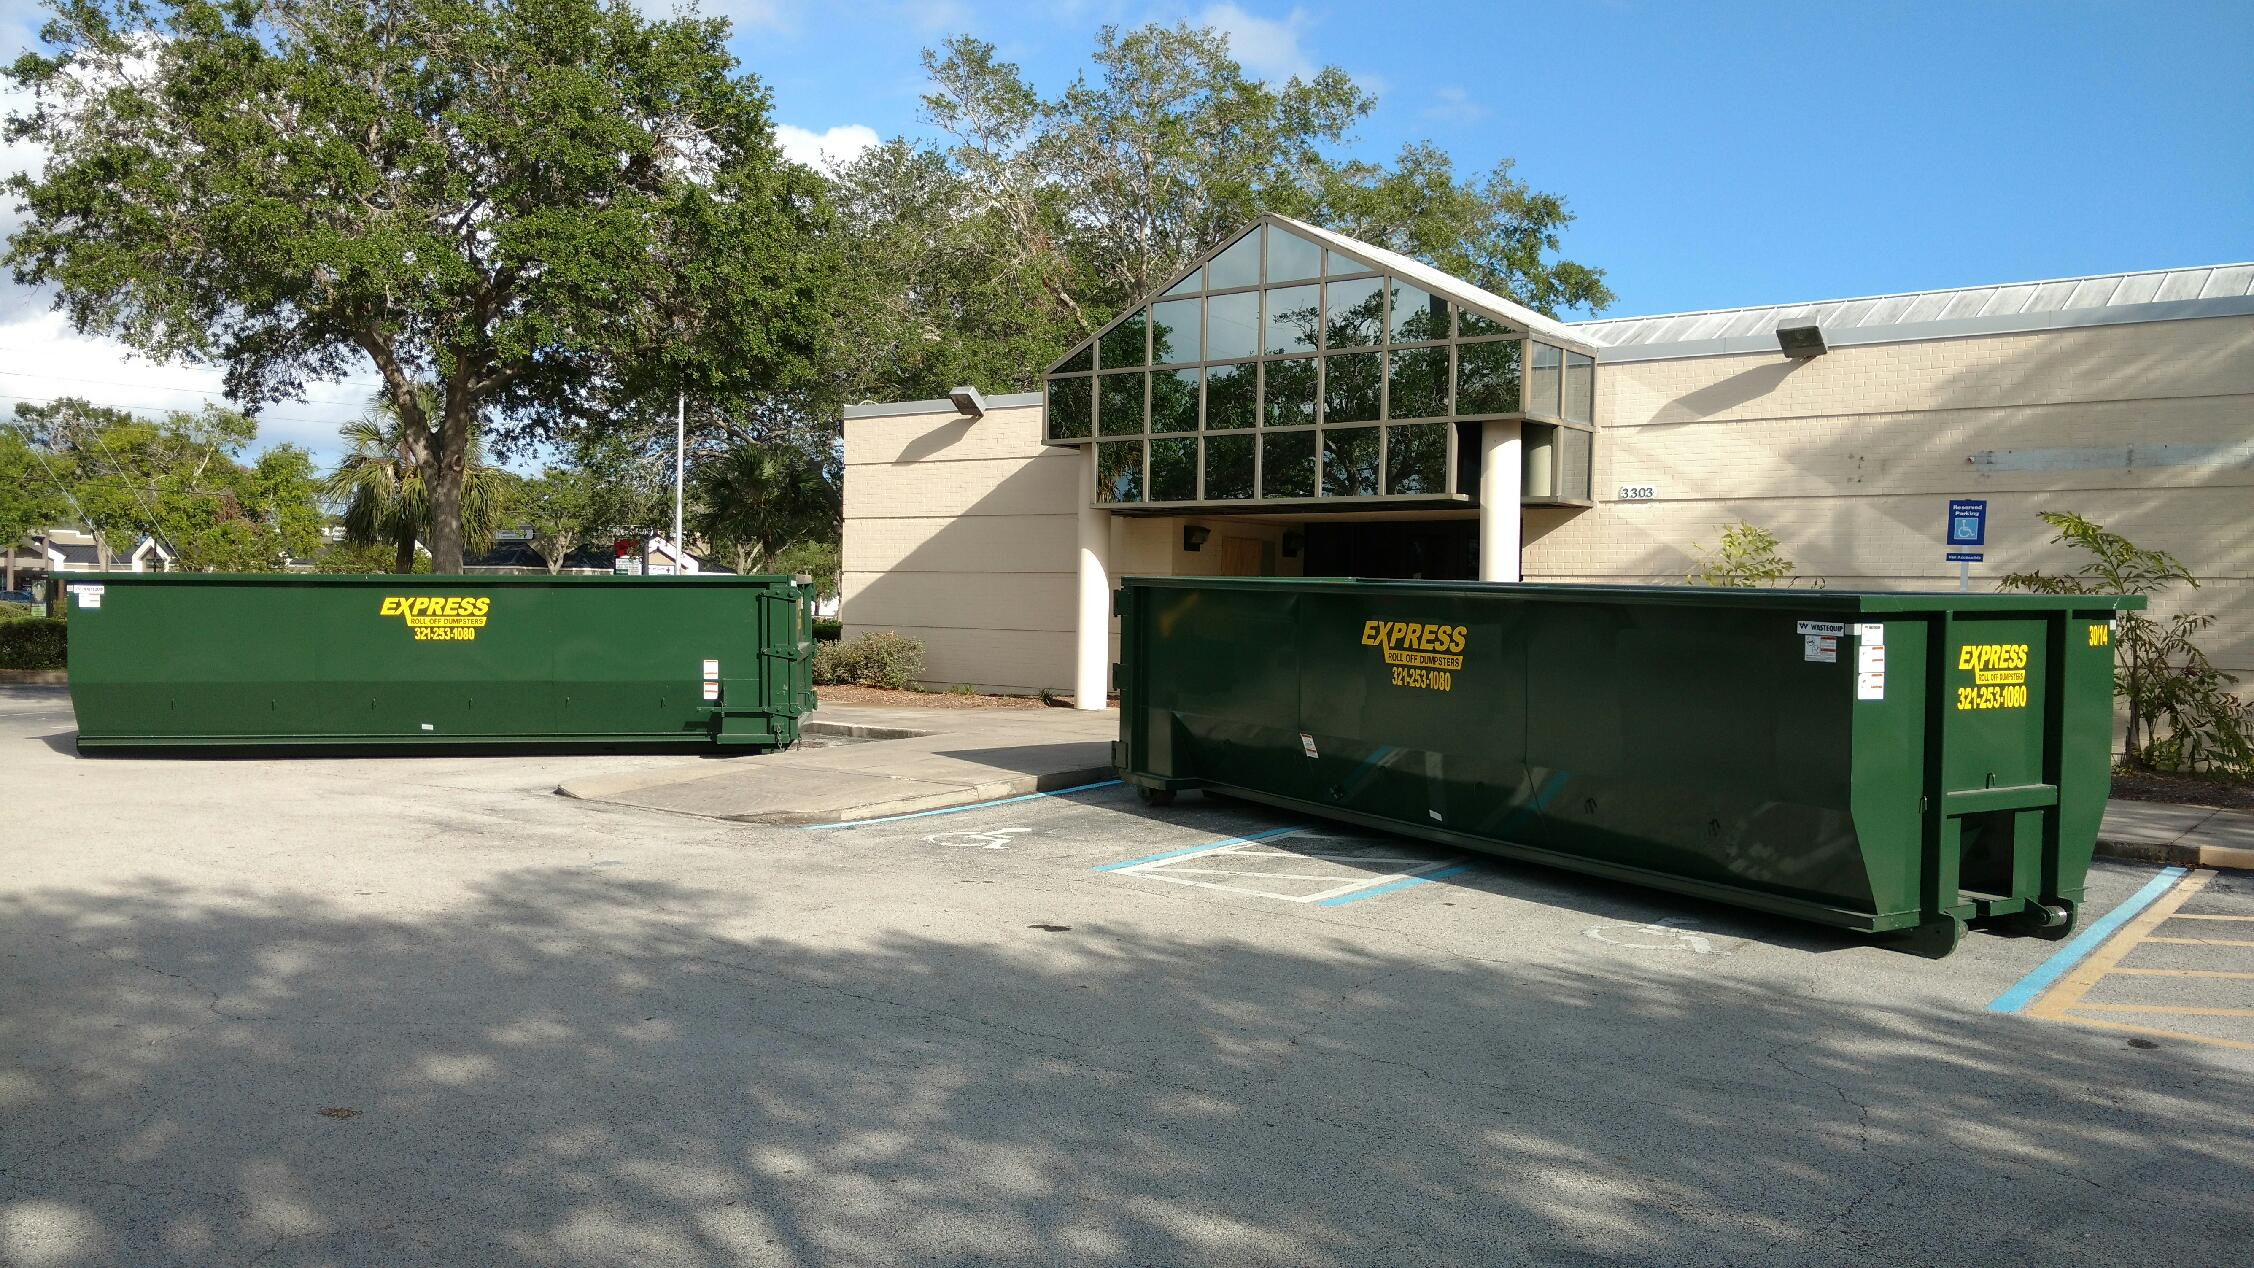 dumpster rental near me prices